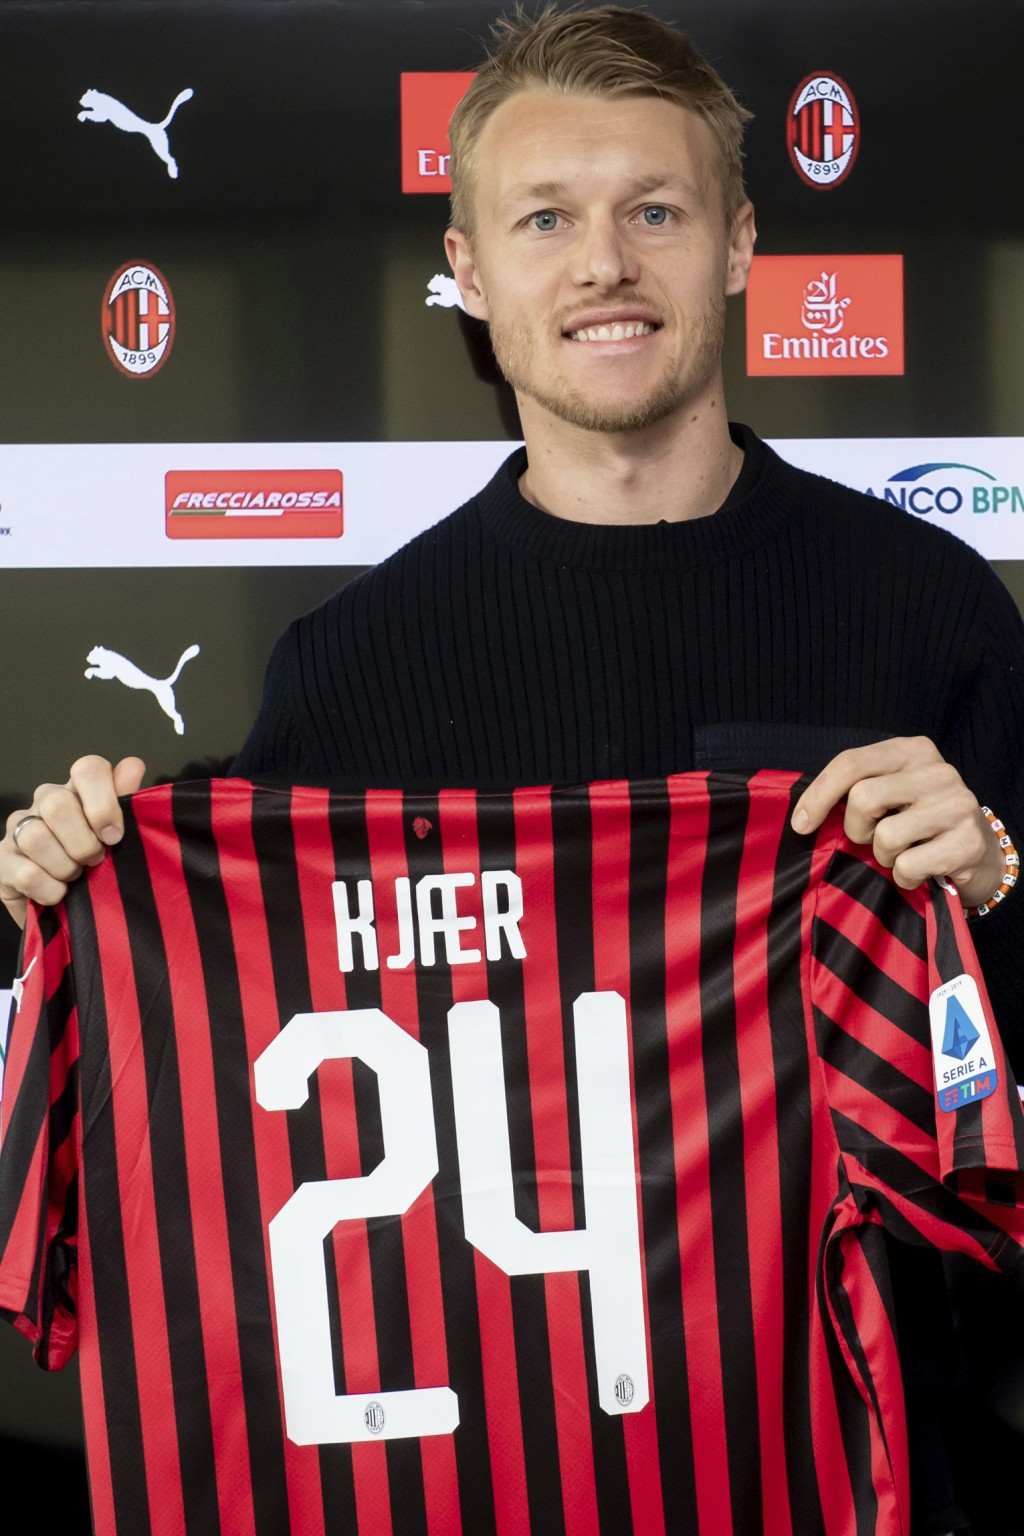 Simon Kjaer holds the AC Milan soccer club jersey as he poses for photographers during his official presentation at he club headquarters in Milan, Ita...